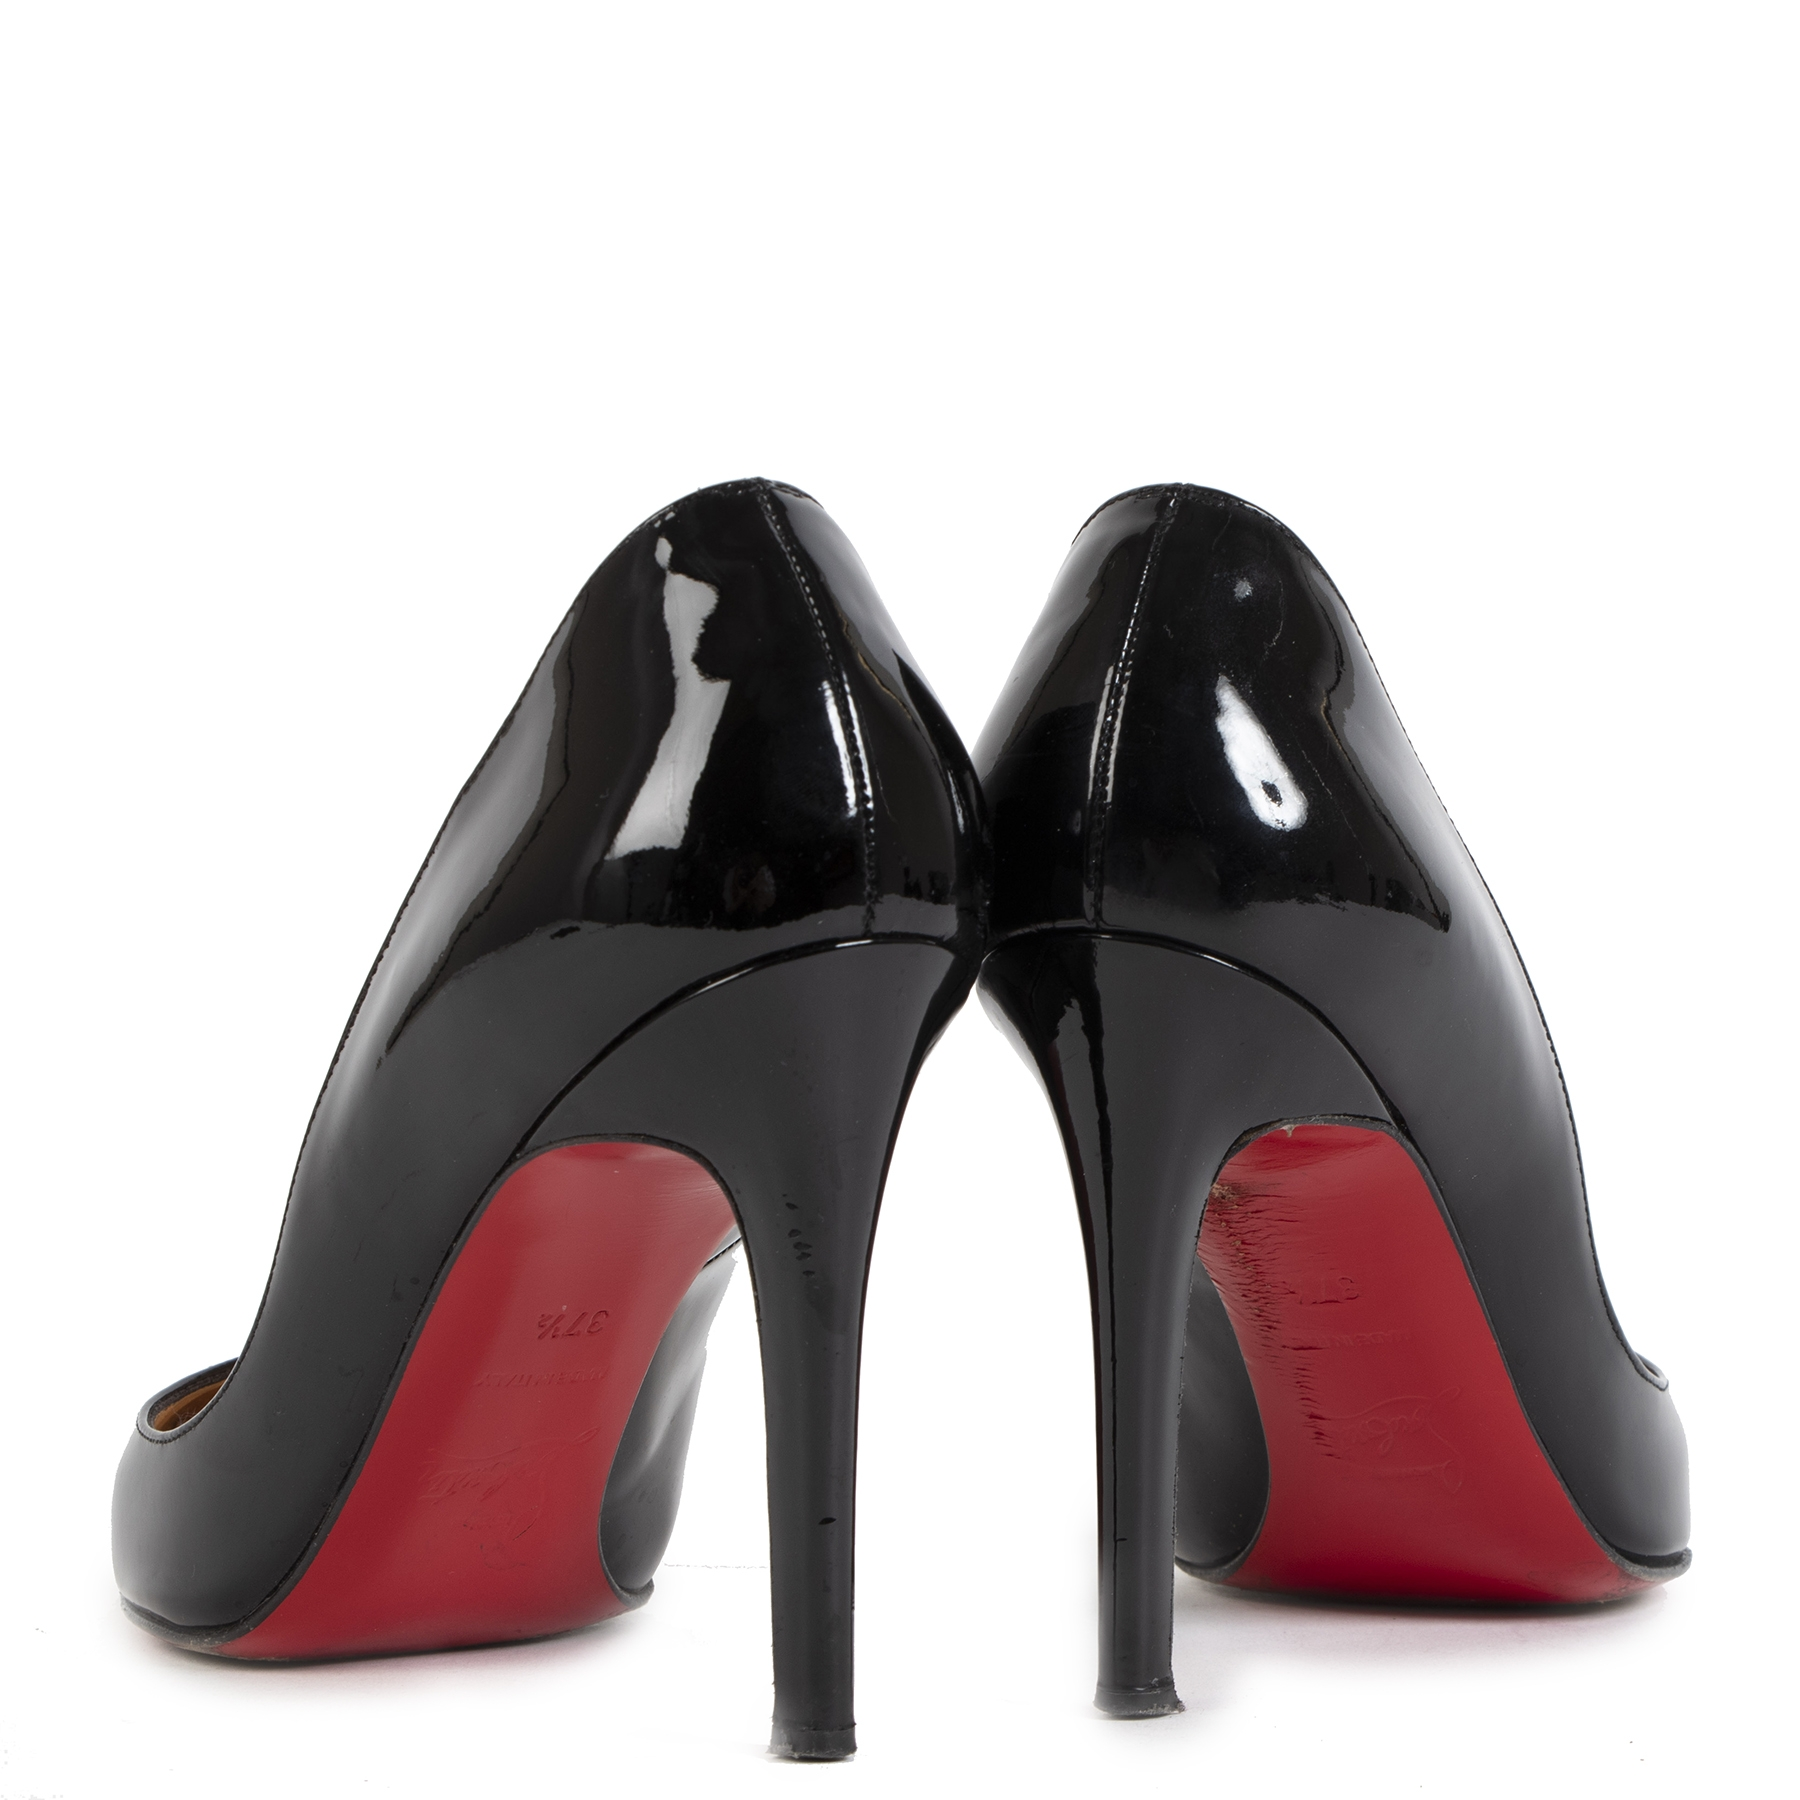 Authentieke tweedehands vintage Louboutin Pigalle Patent Leather Pumps - Size 37,5 koop online webshop LabelLOV